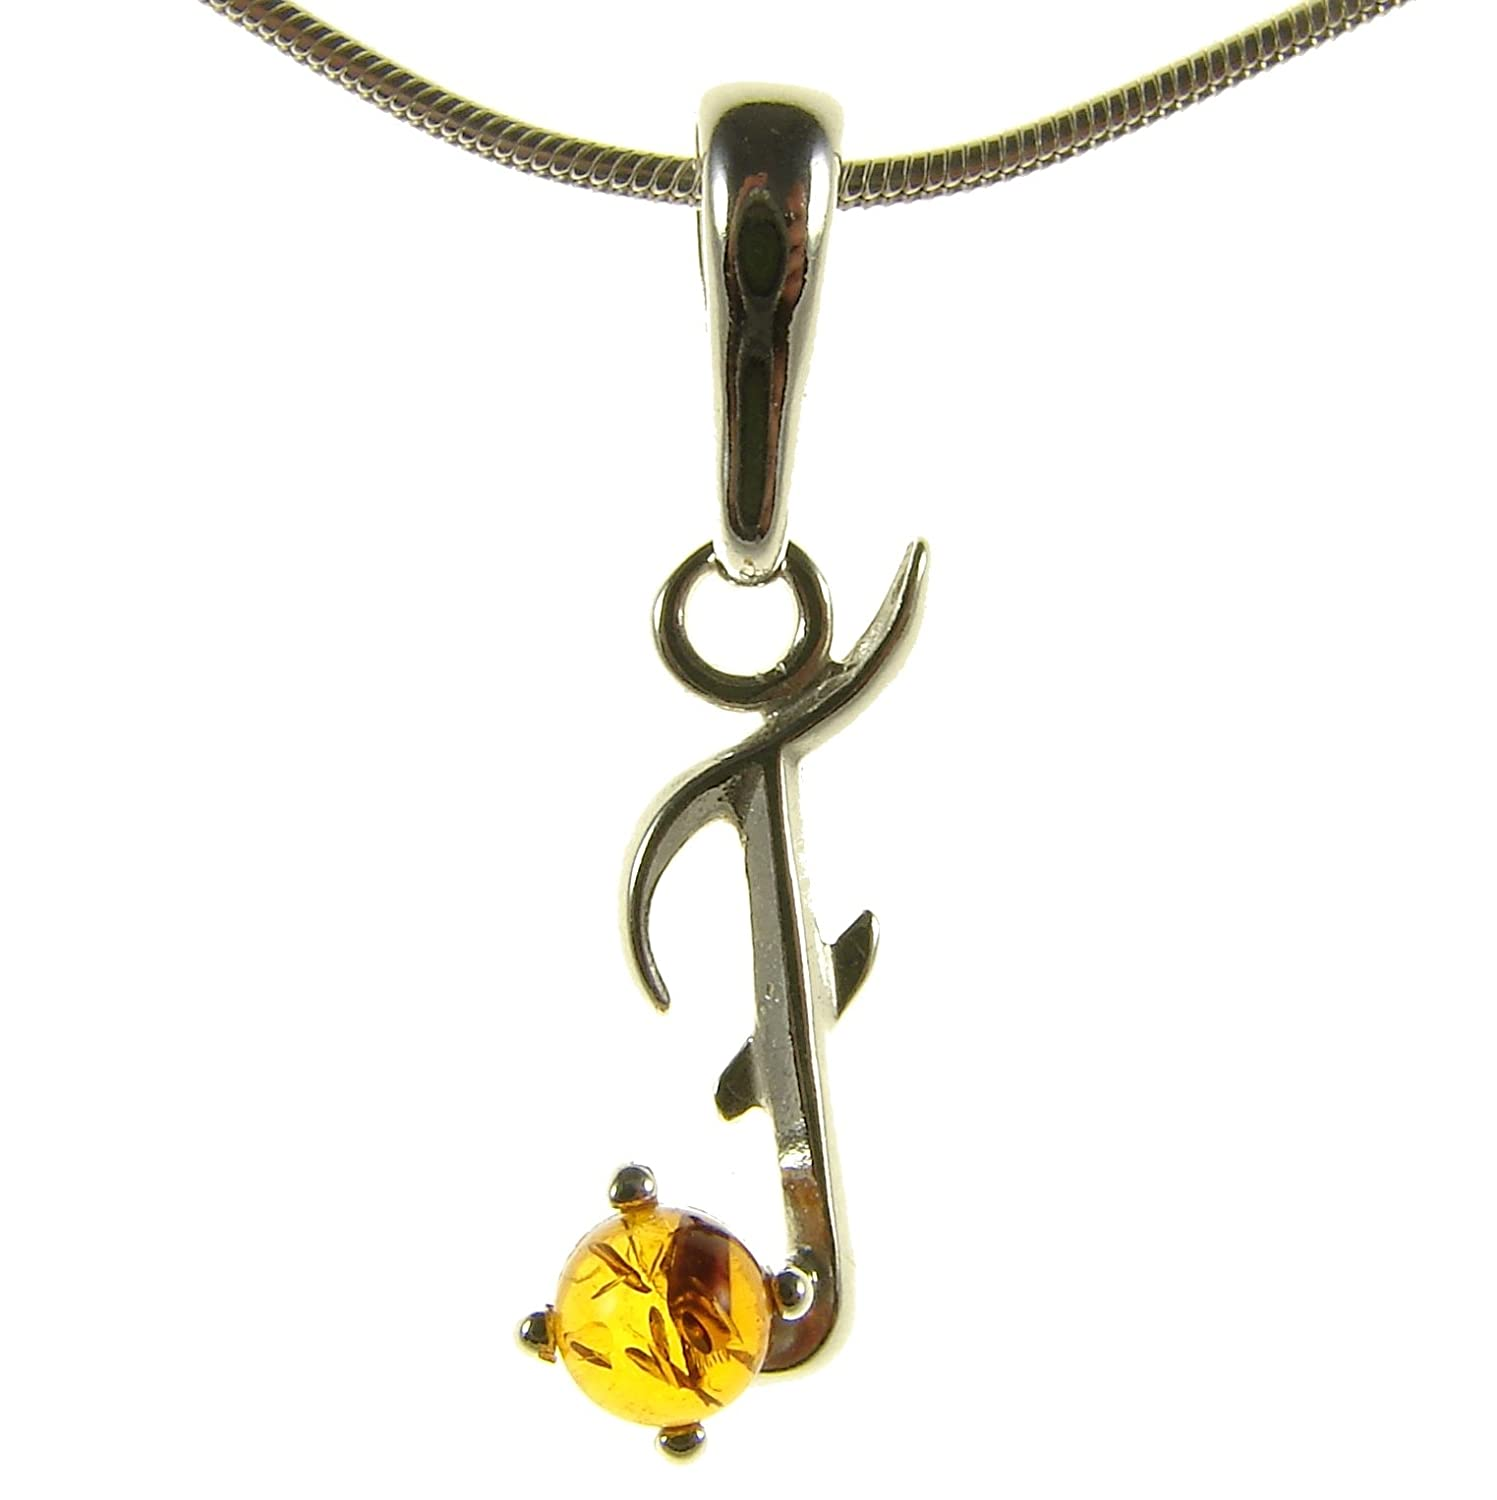 BALTIC AMBER AND STERLING SILVER 925 ALPHABET LETTER F PENDANT NECKLACE 10 12 14 16 18 20 22 24 26 28 30 32 34 36 38 40 1mm ITALIAN SNAKE CHAIN